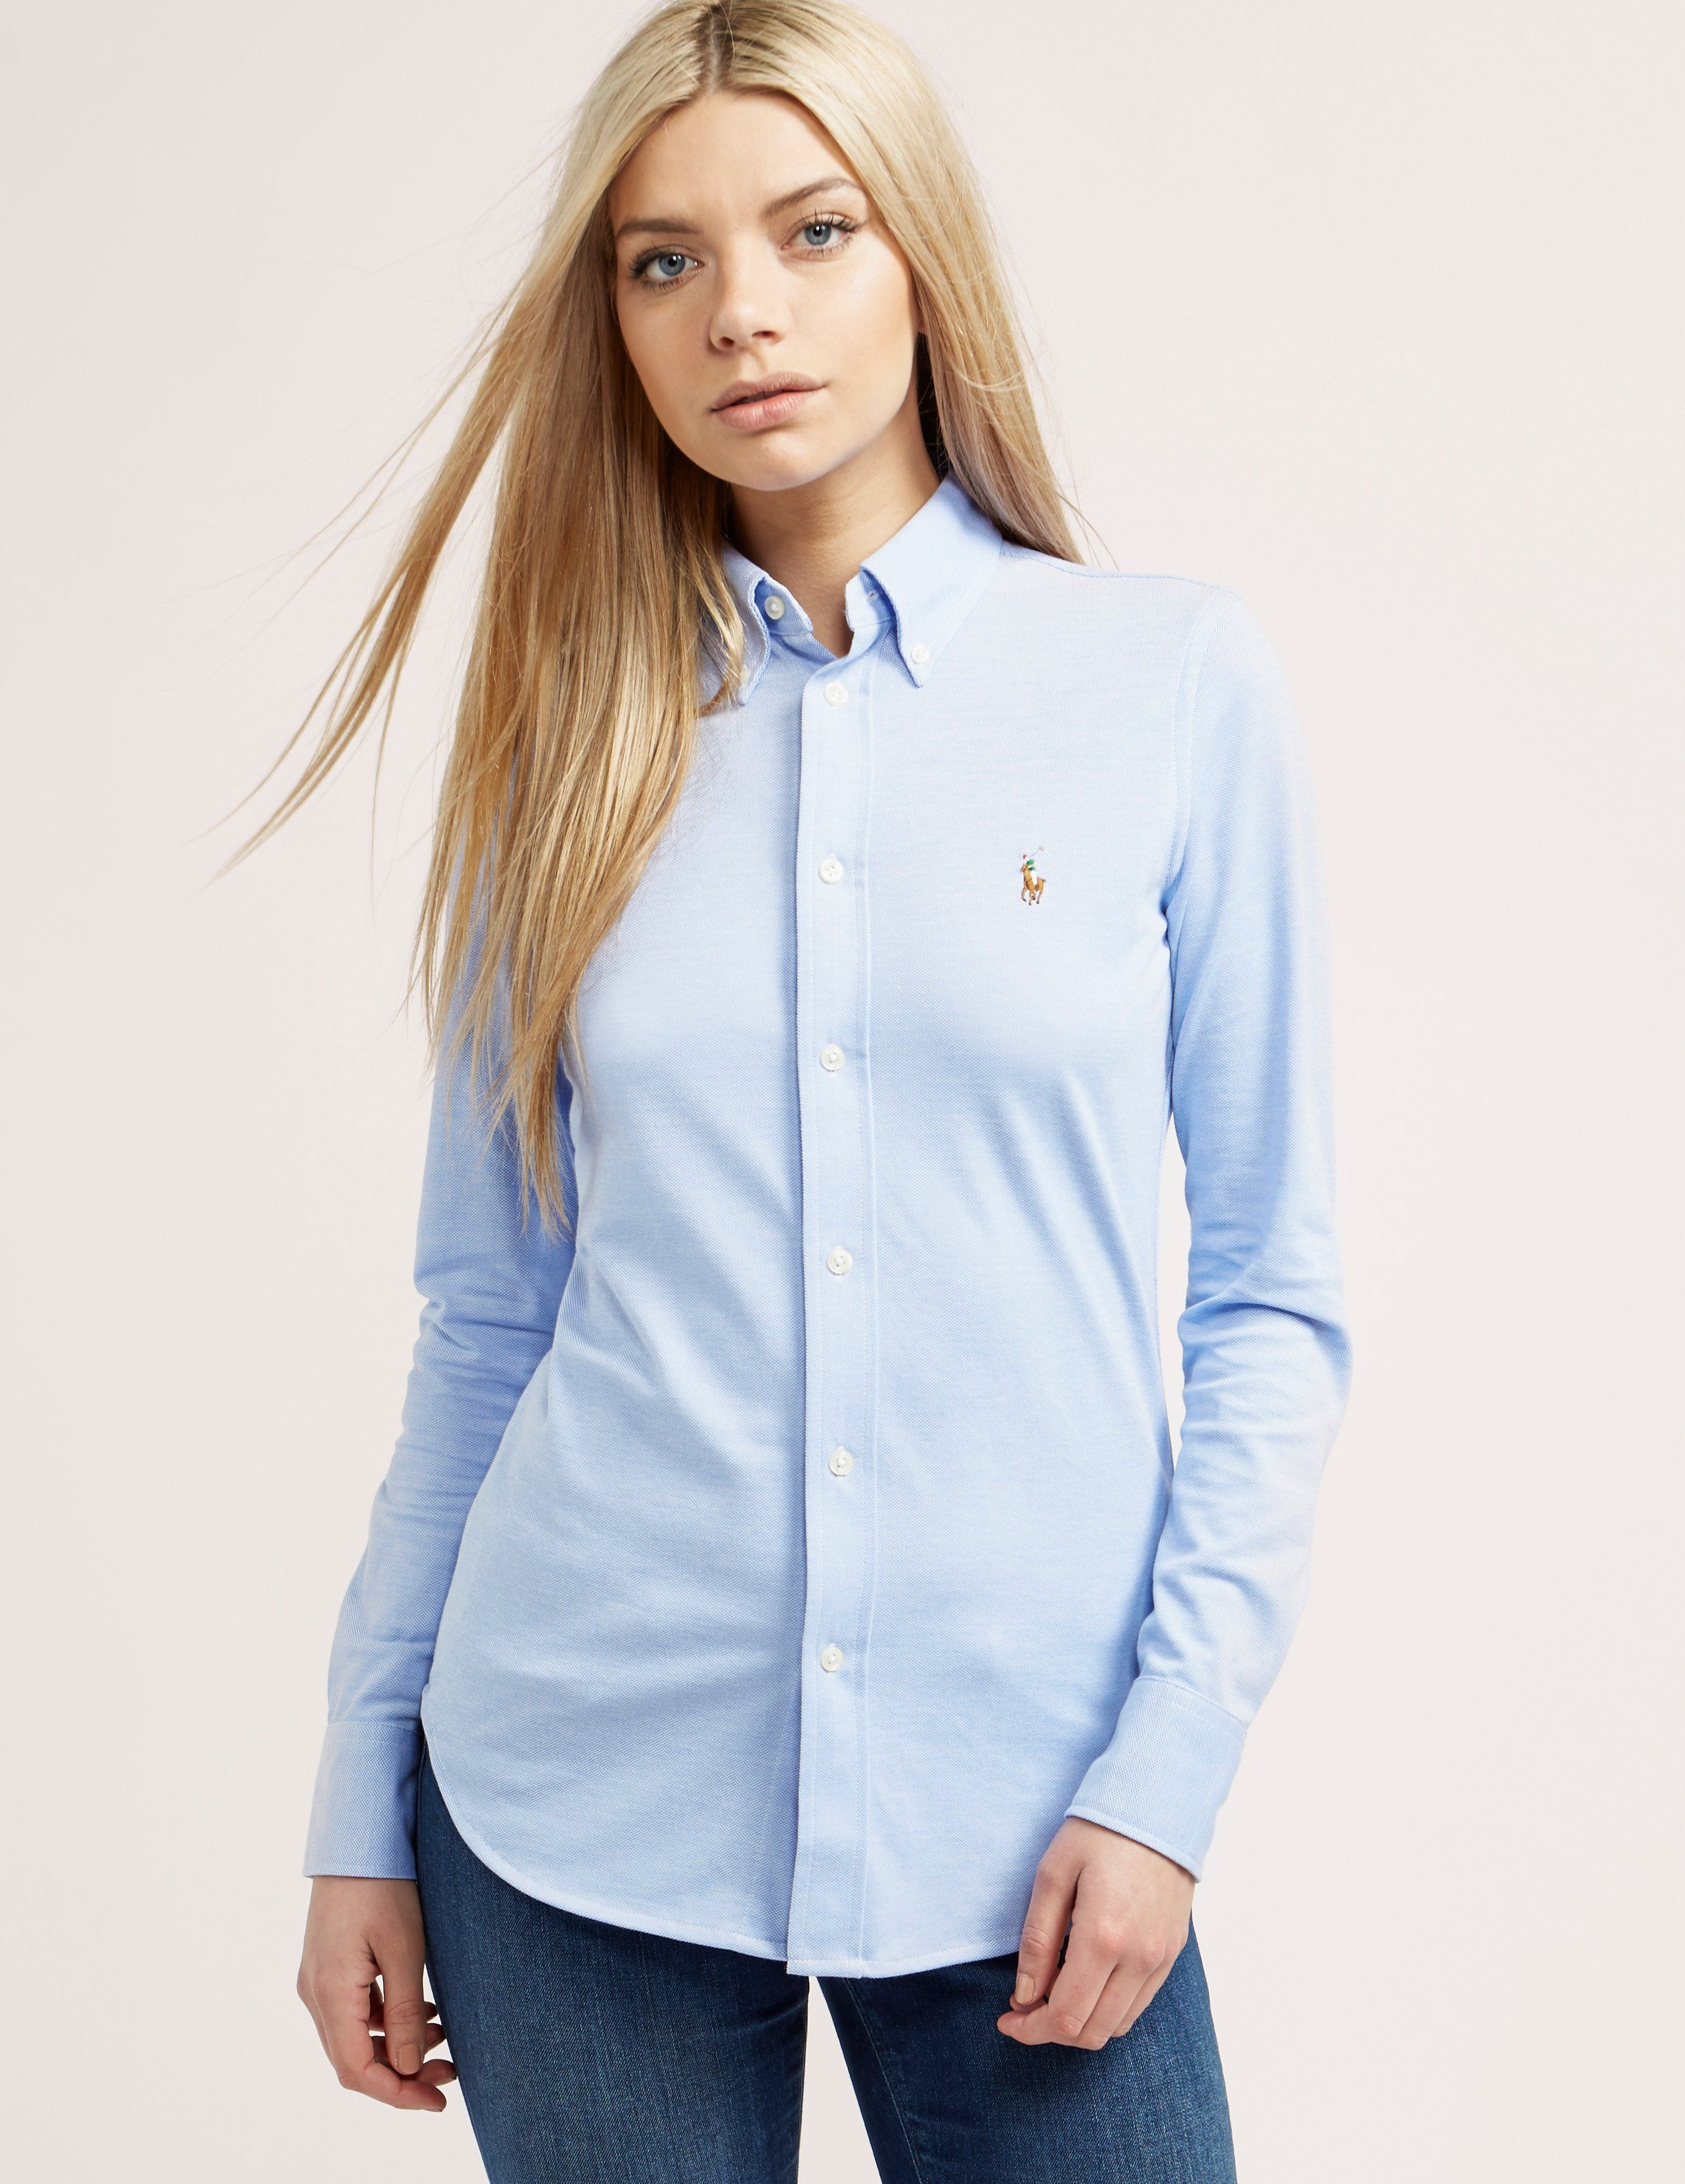 Polo Ralph Lauren Oxford Shirt